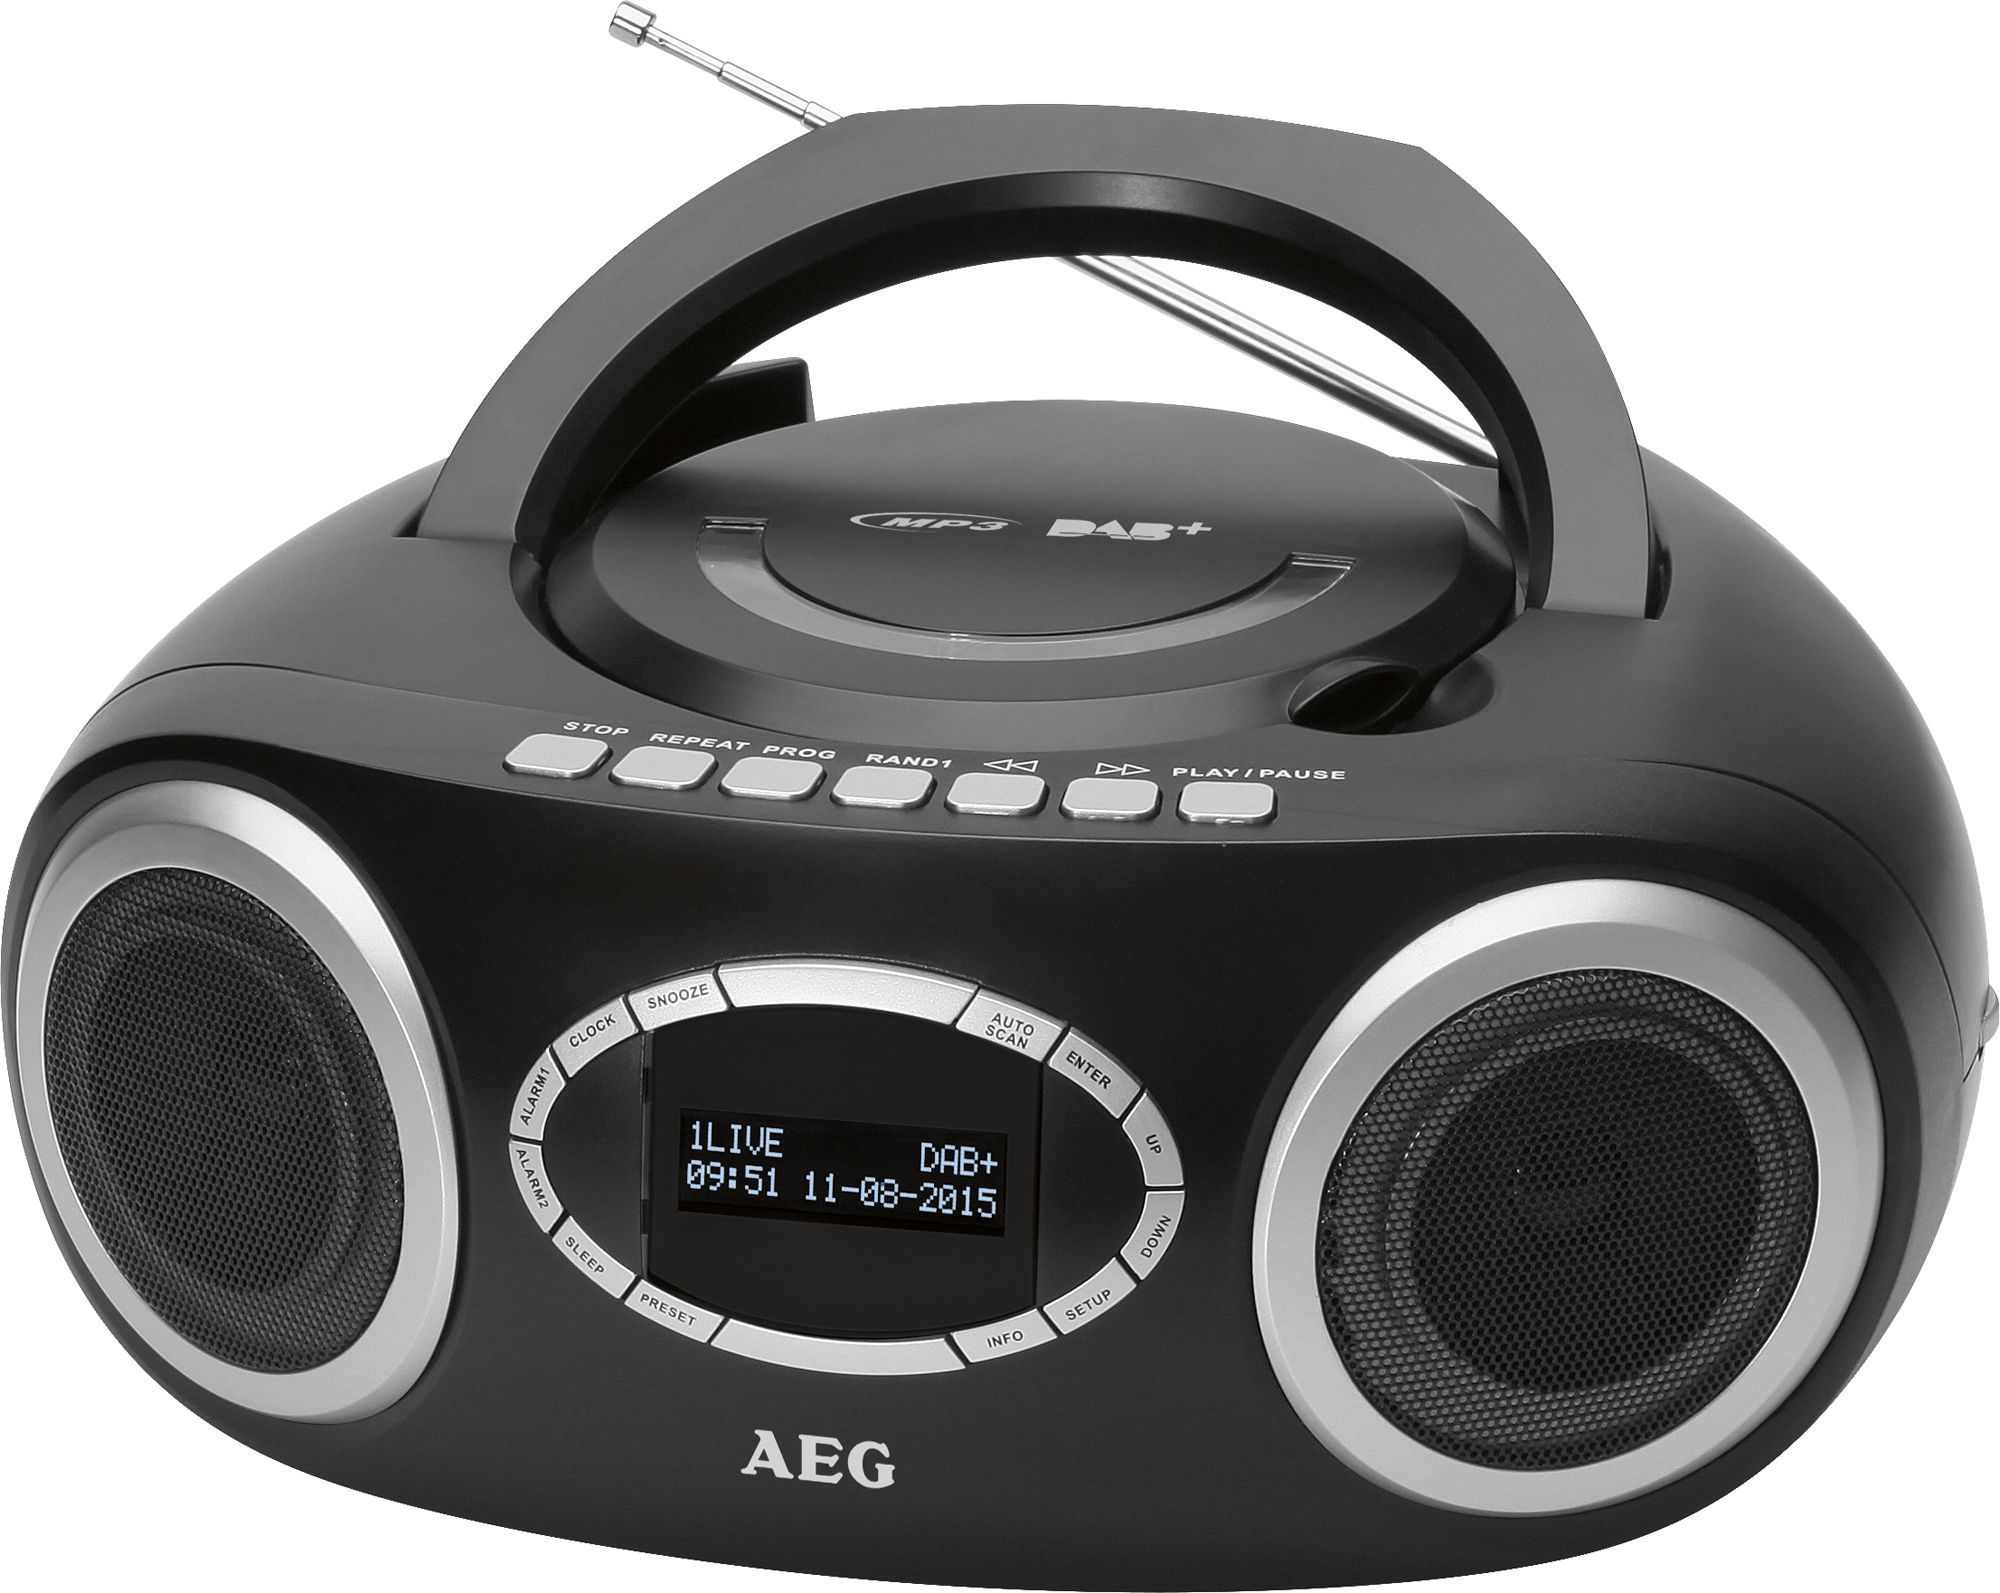 AEG  DAB+ / UKW Stereo-Radio mit CD / MP3 & USB-Port »SR 4370«